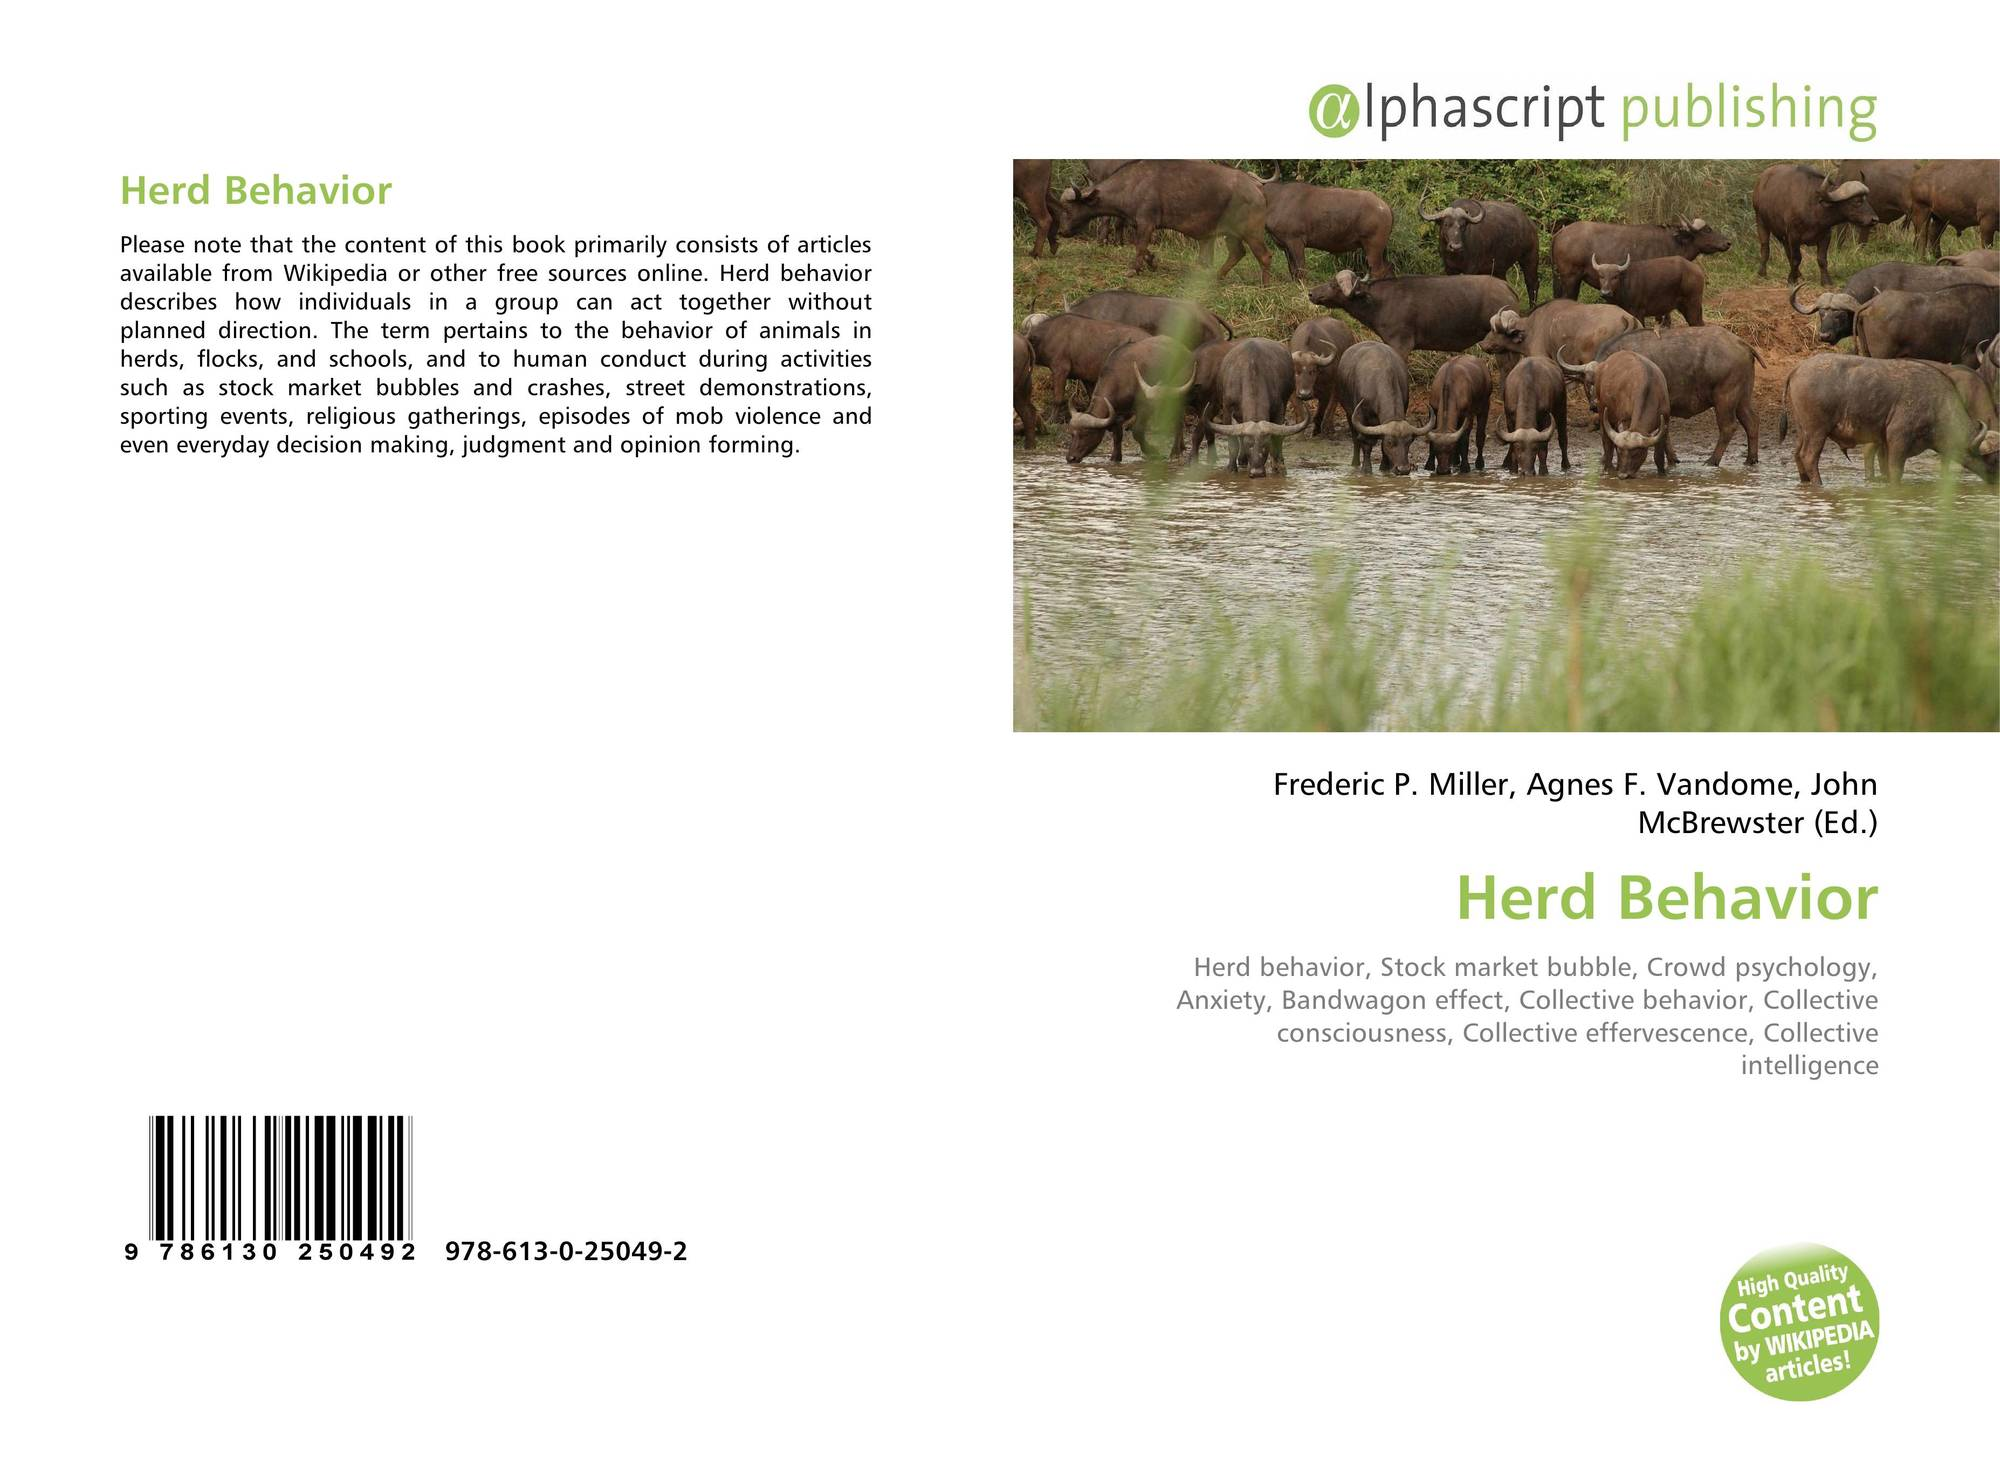 herd behaviour and the housing bubble and collapse Case incident # 2: herd behavior and the housing bubble (and collapse) 1) some research suggests herd behavior increases as the size of the group increases why do you think this might be the case.